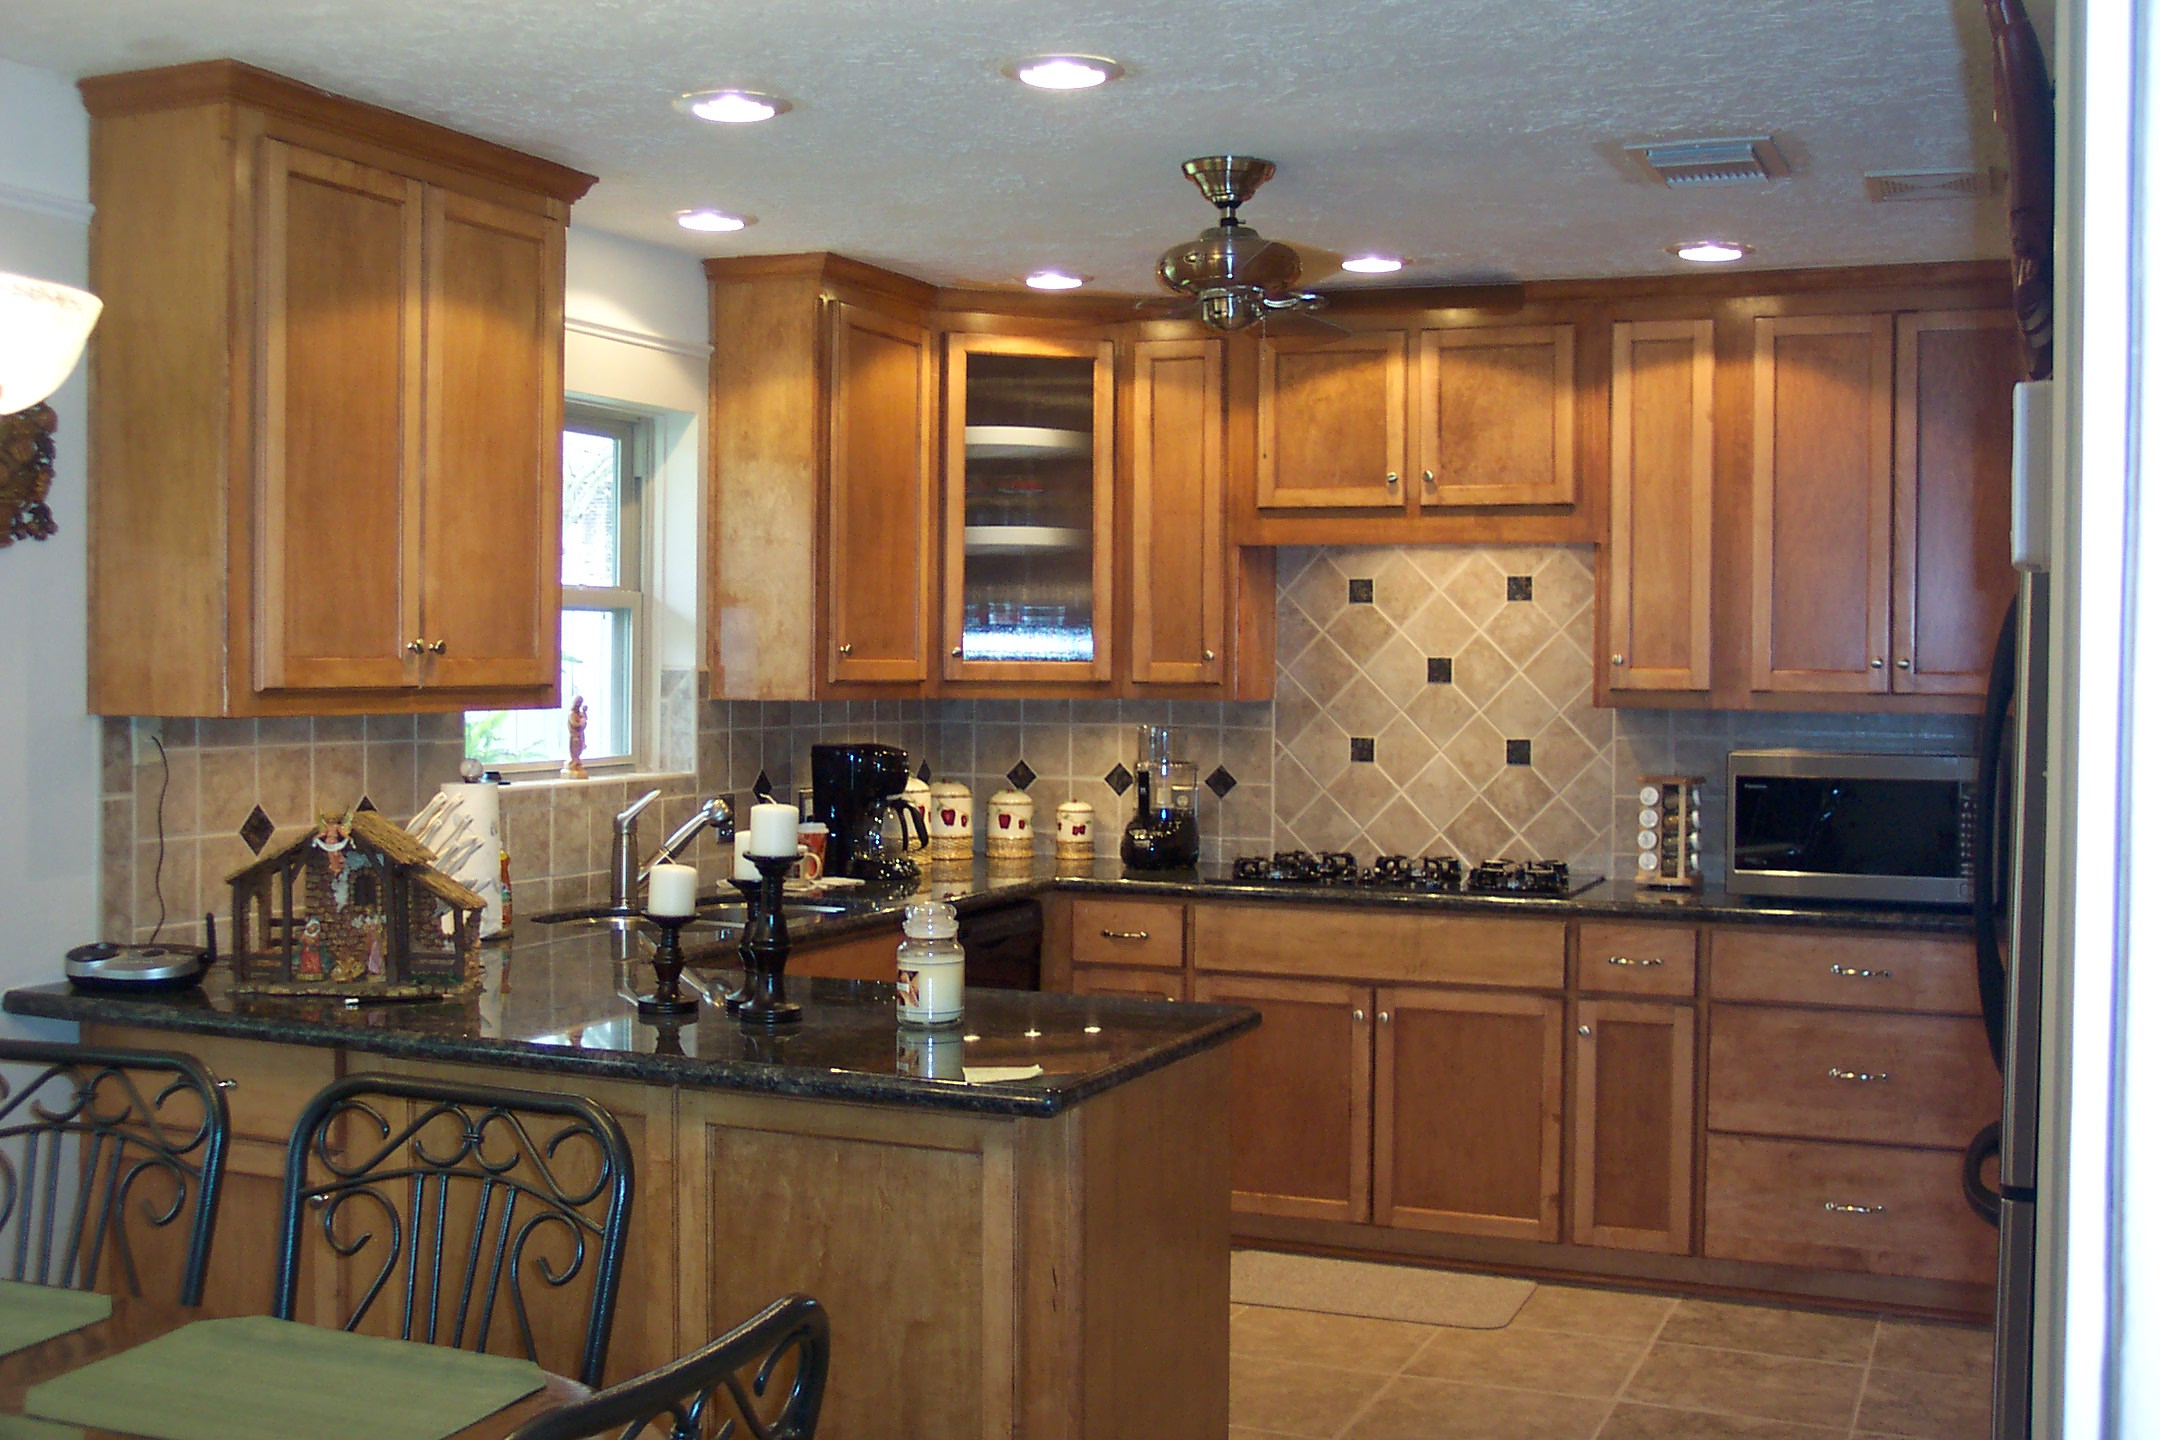 Custom Kitchen Cabinets Designs from Wood-Mode - Transforming Your Kitchen Interiors